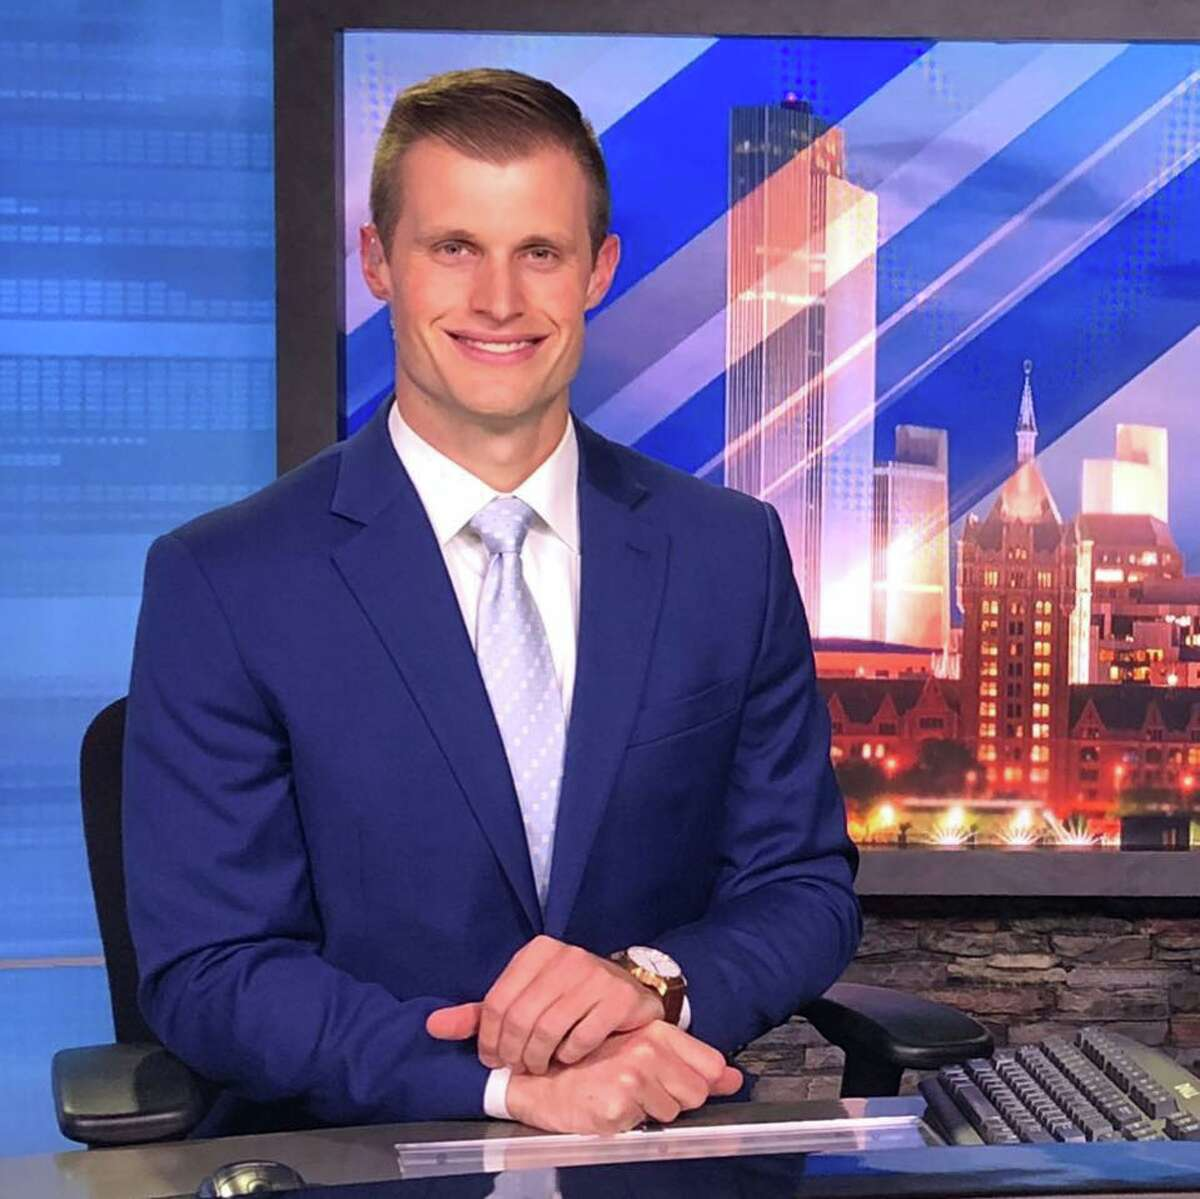 CBS6's newly named sports director Chet Davis is today's